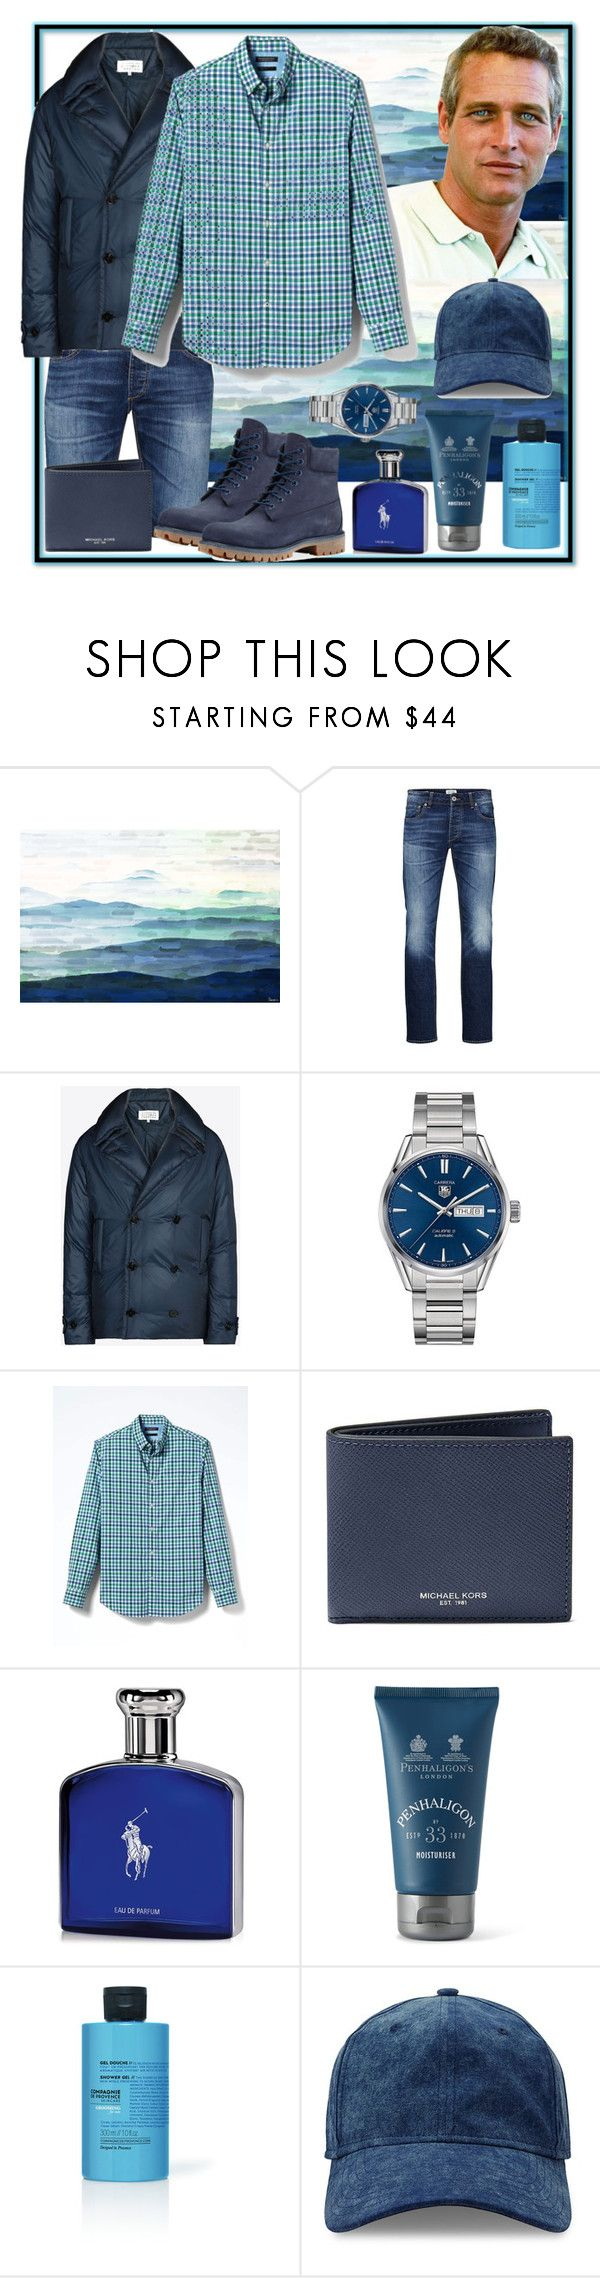 """Being Paul Newman"" by natalyapril1976 ❤ liked on Polyvore featuring Jack & Jones, Maison Margiela, TAG Heuer, Banana Republic, Michael Kors, Ralph Lauren, PENHALIGON'S, La Compagnie de Provence, Gents and Timberland"